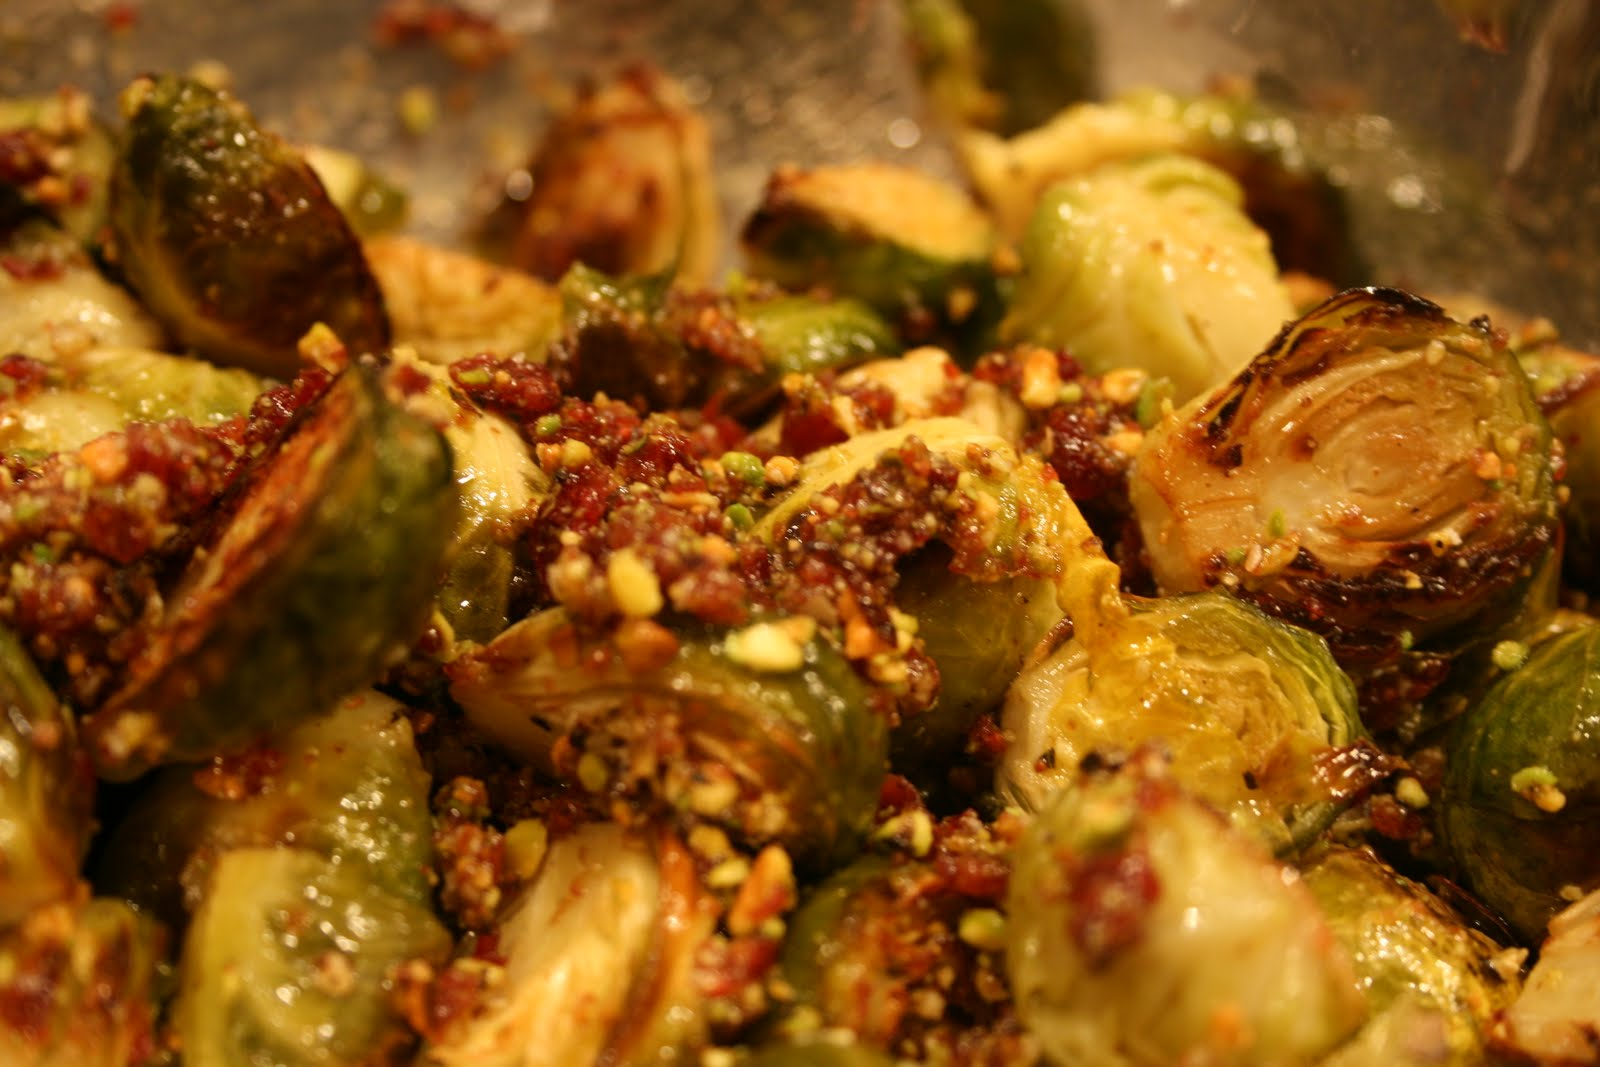 Foray into my Kitchen: Brussels Sprouts with Cranberry Pistachio Pesto